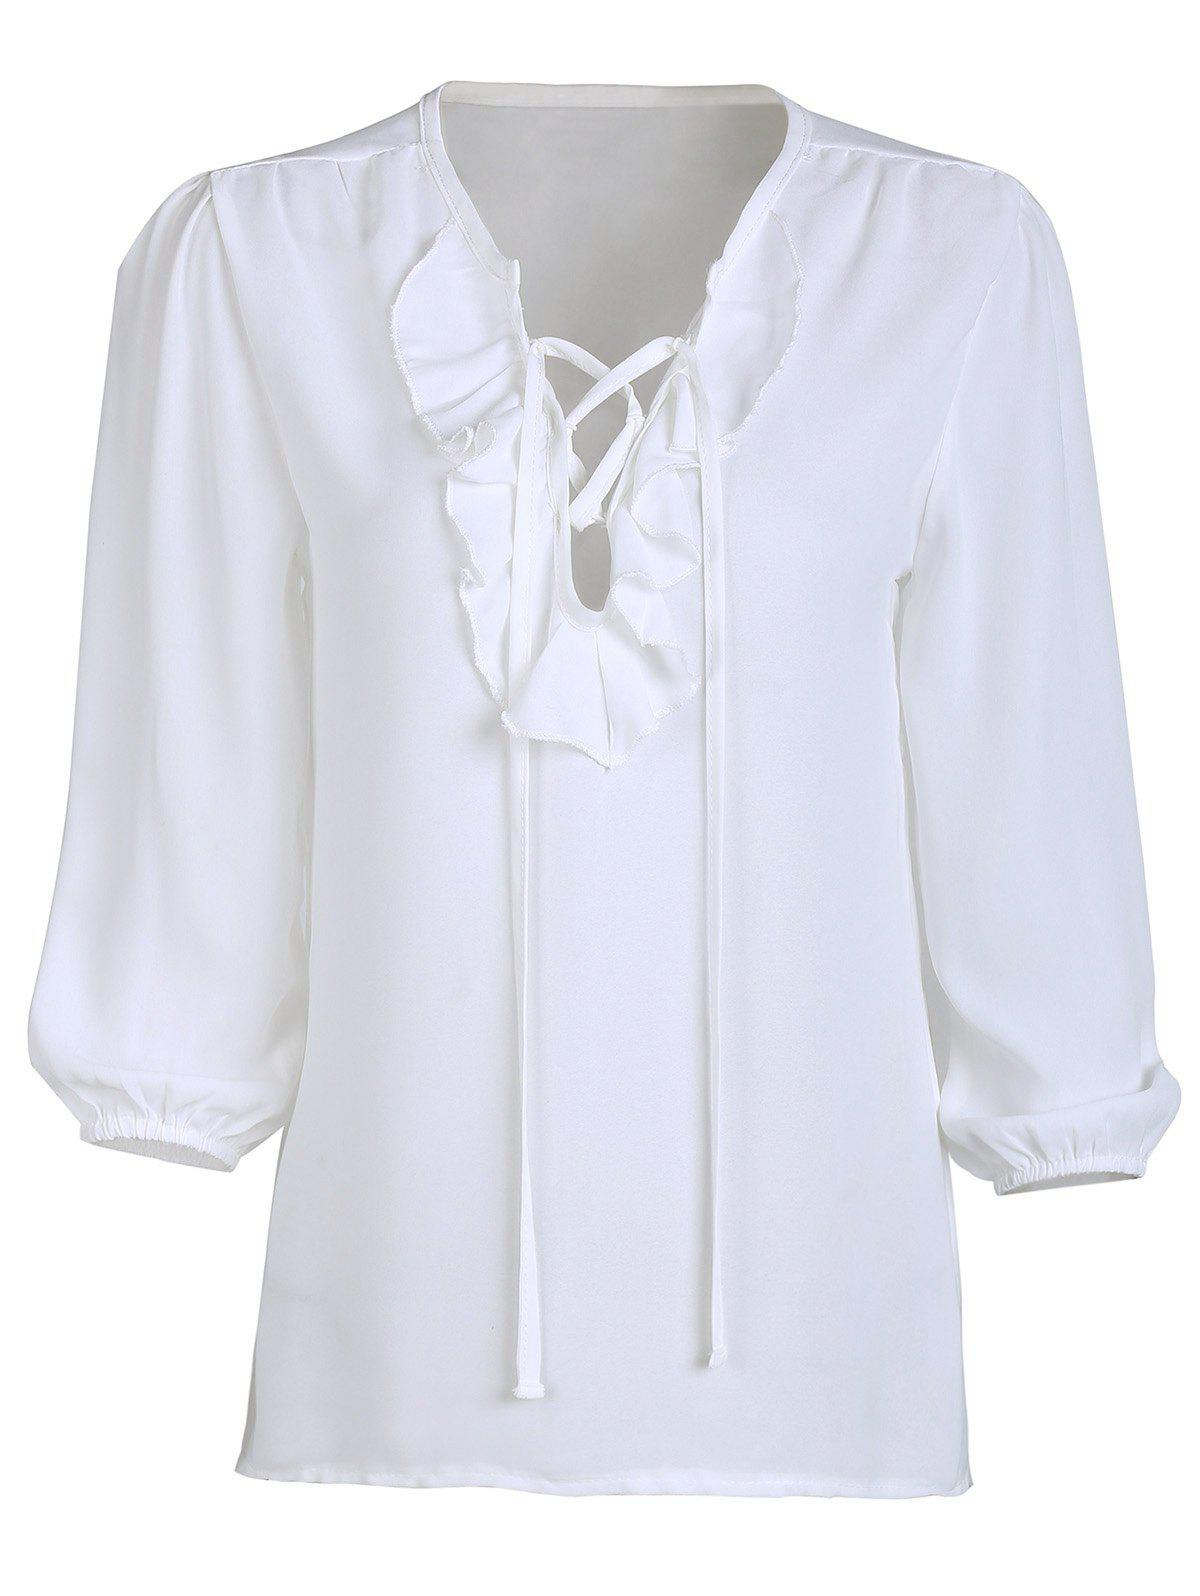 Trendy V-Neck Lace-Up Chiffon 3/4 Sleeve Blouse For Women